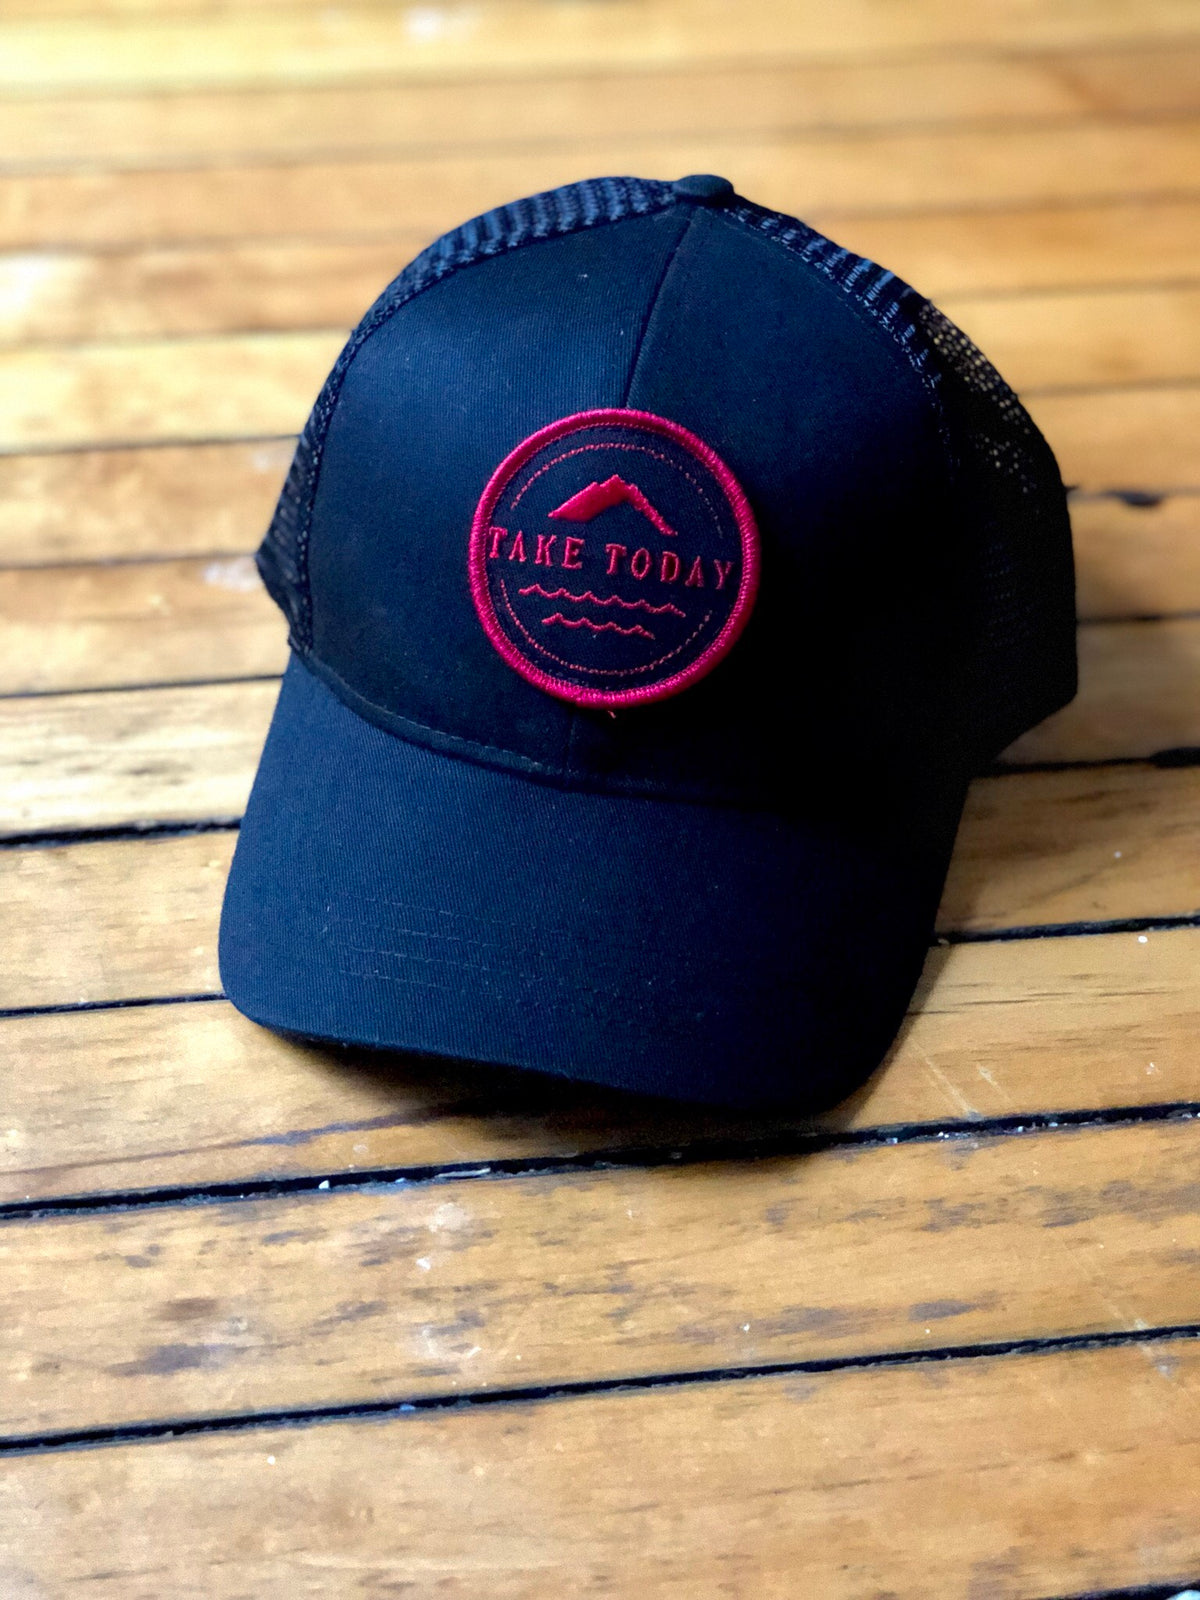 """uptown"" trucker hat in ember - Take Today Community"